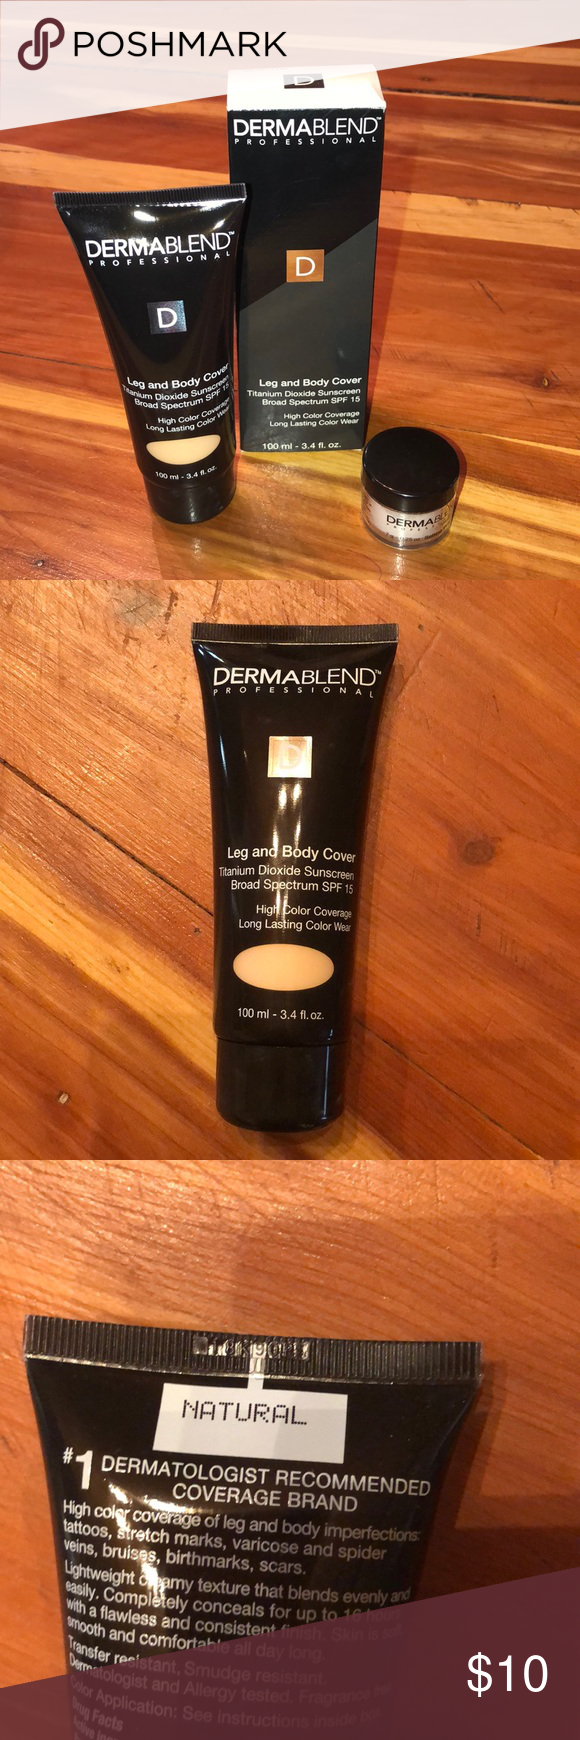 Dermablend Leg and Body Cover with Setting Powder